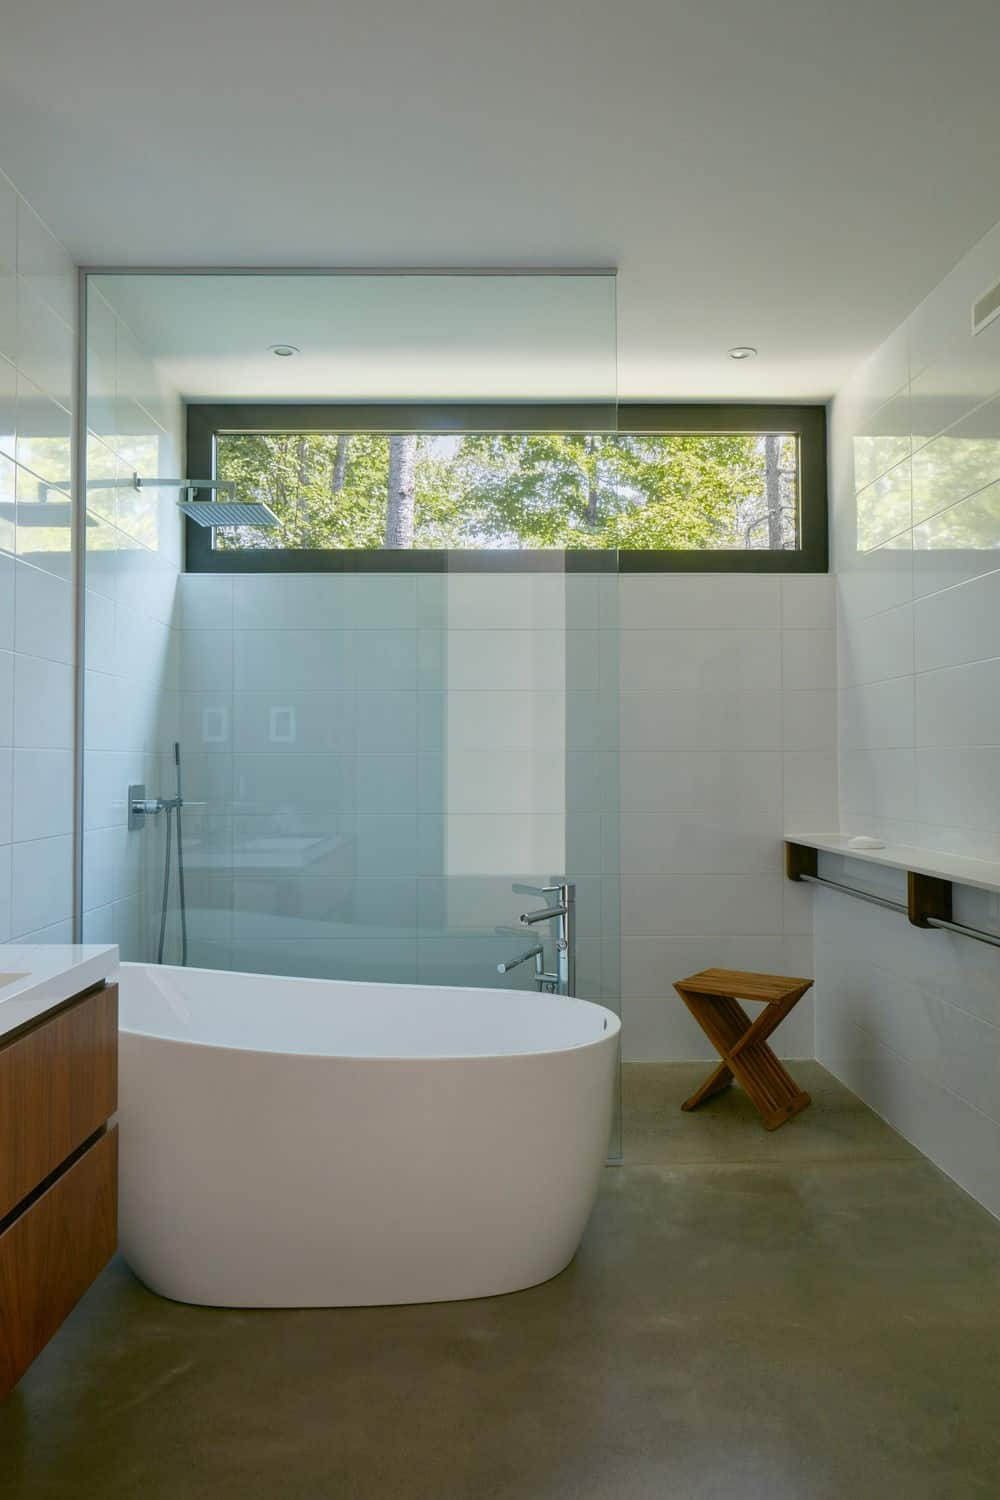 The bathroom is complete with a walk-in shower, deep soaking tub and sink. Photo Credit: James Brittain